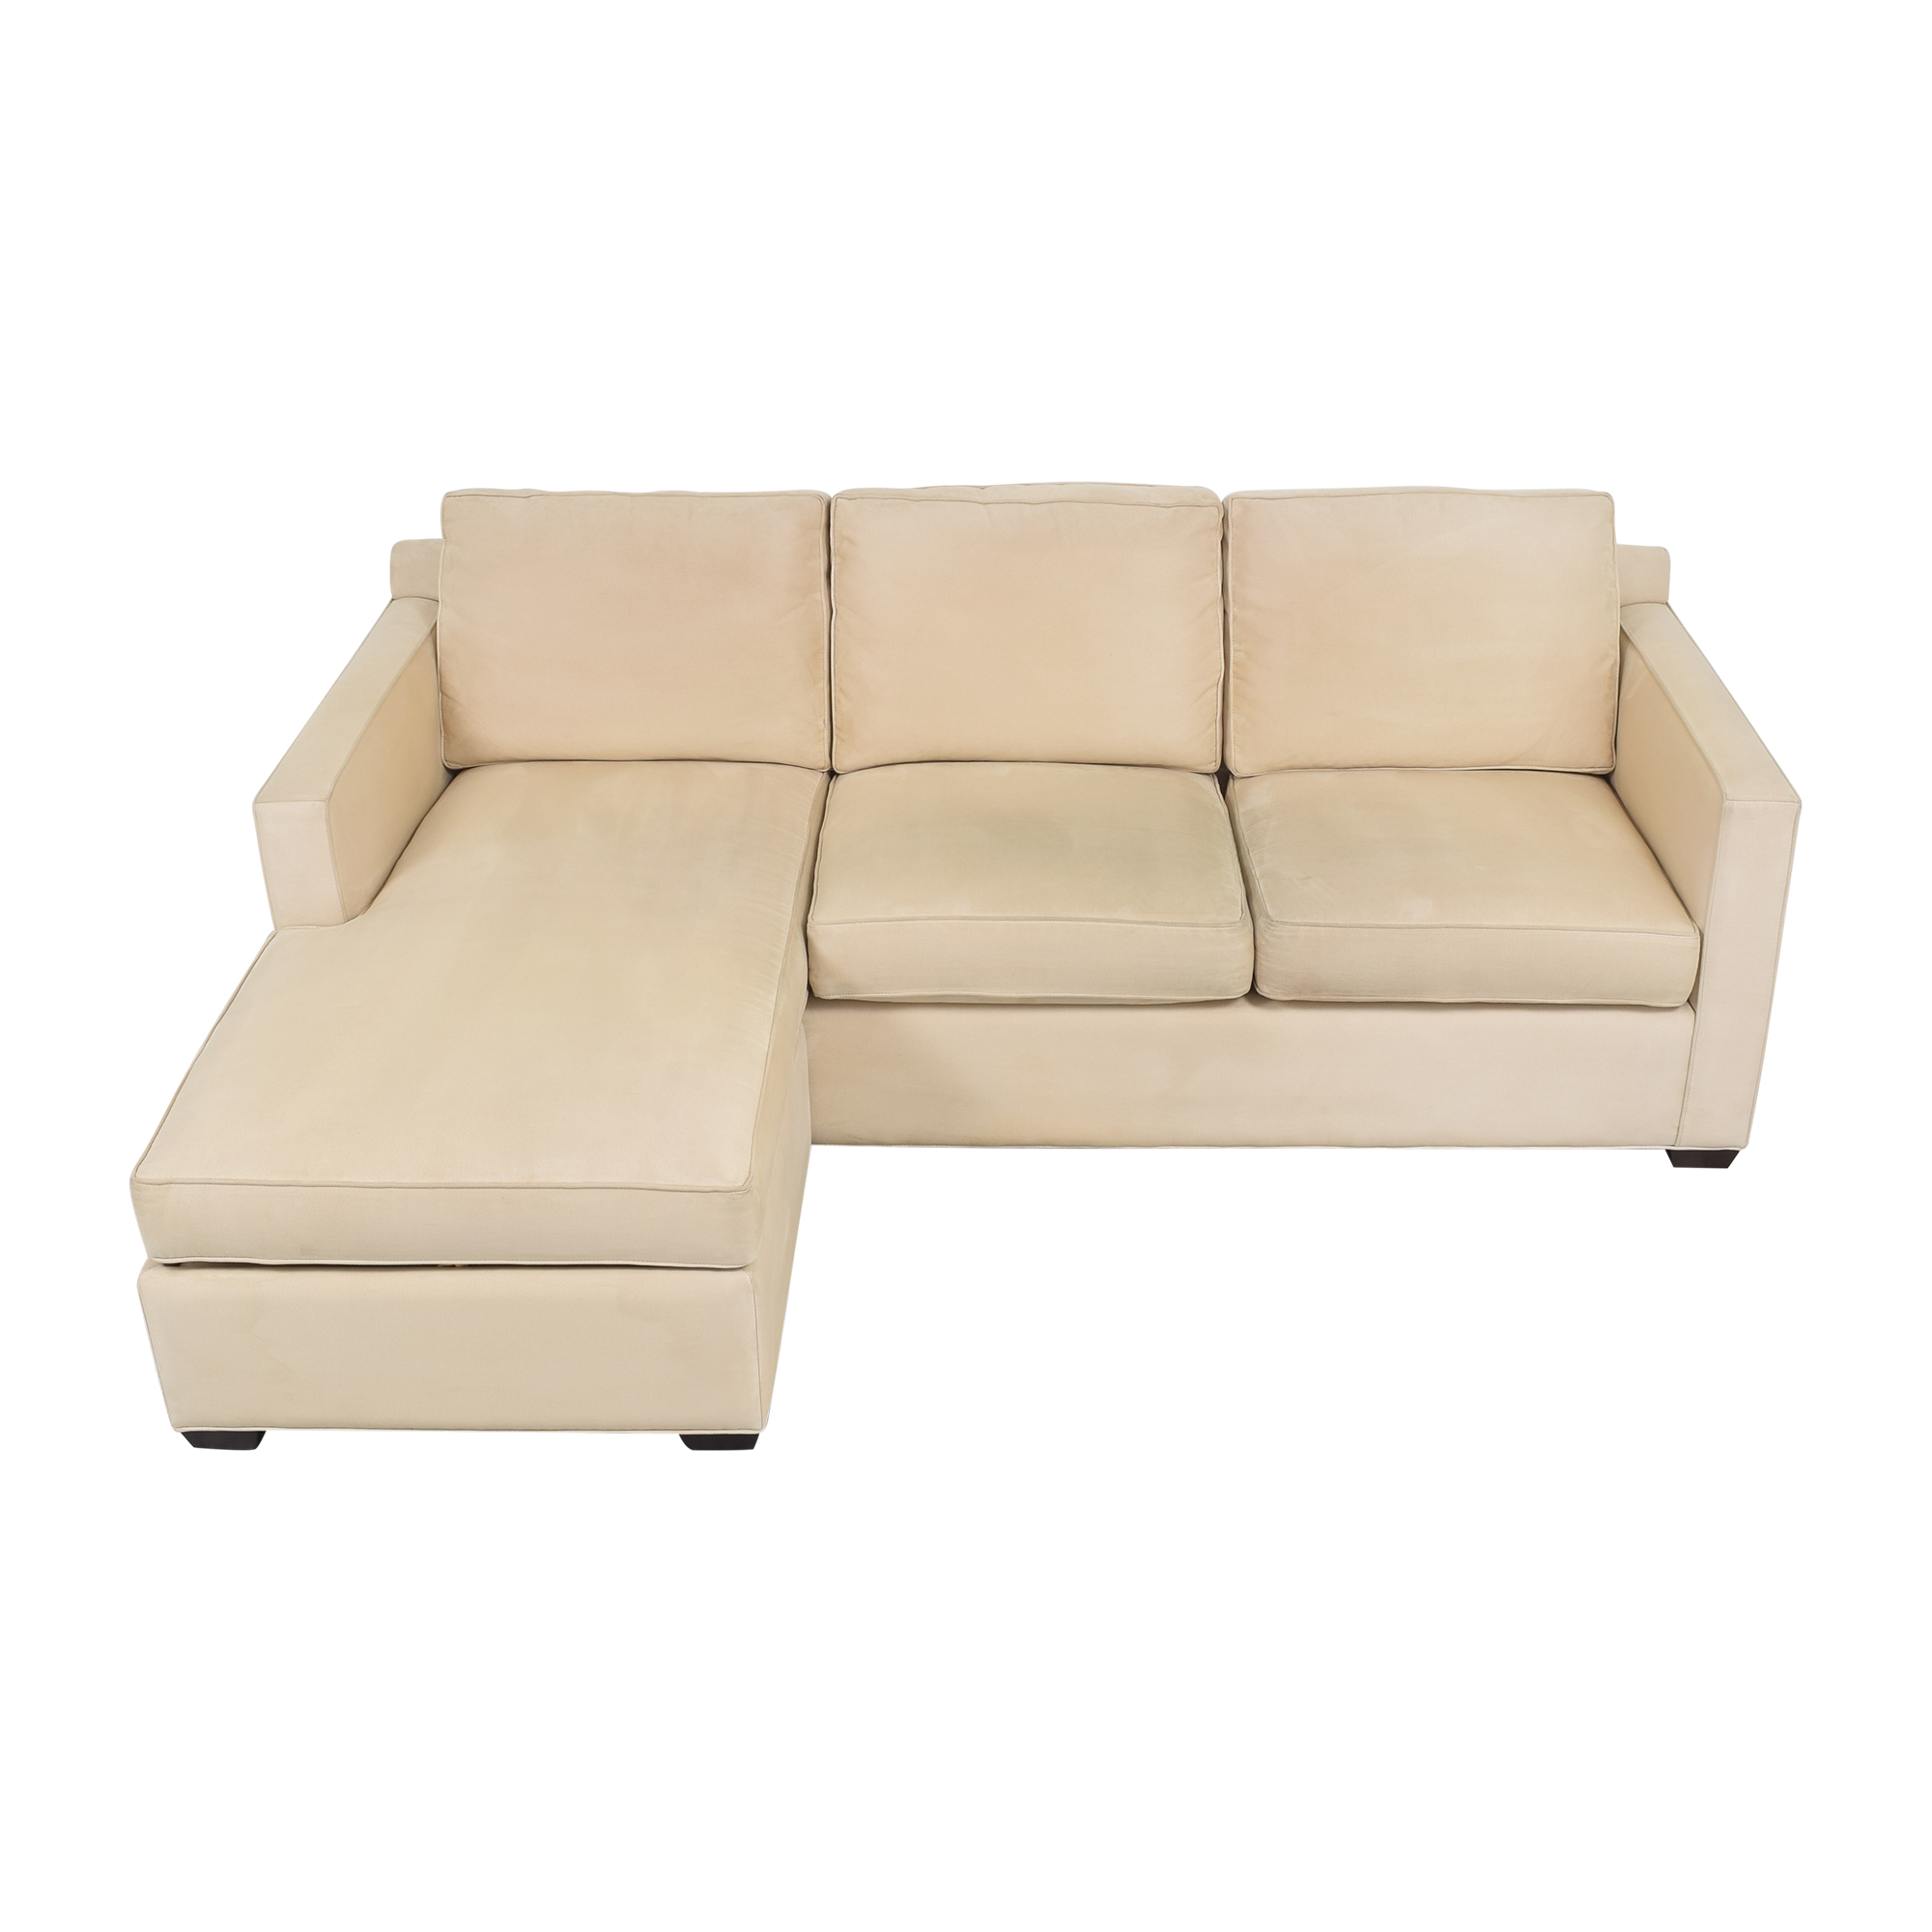 Crate & Barrel Crate and Barrel Chaise Sectional Sofa nyc